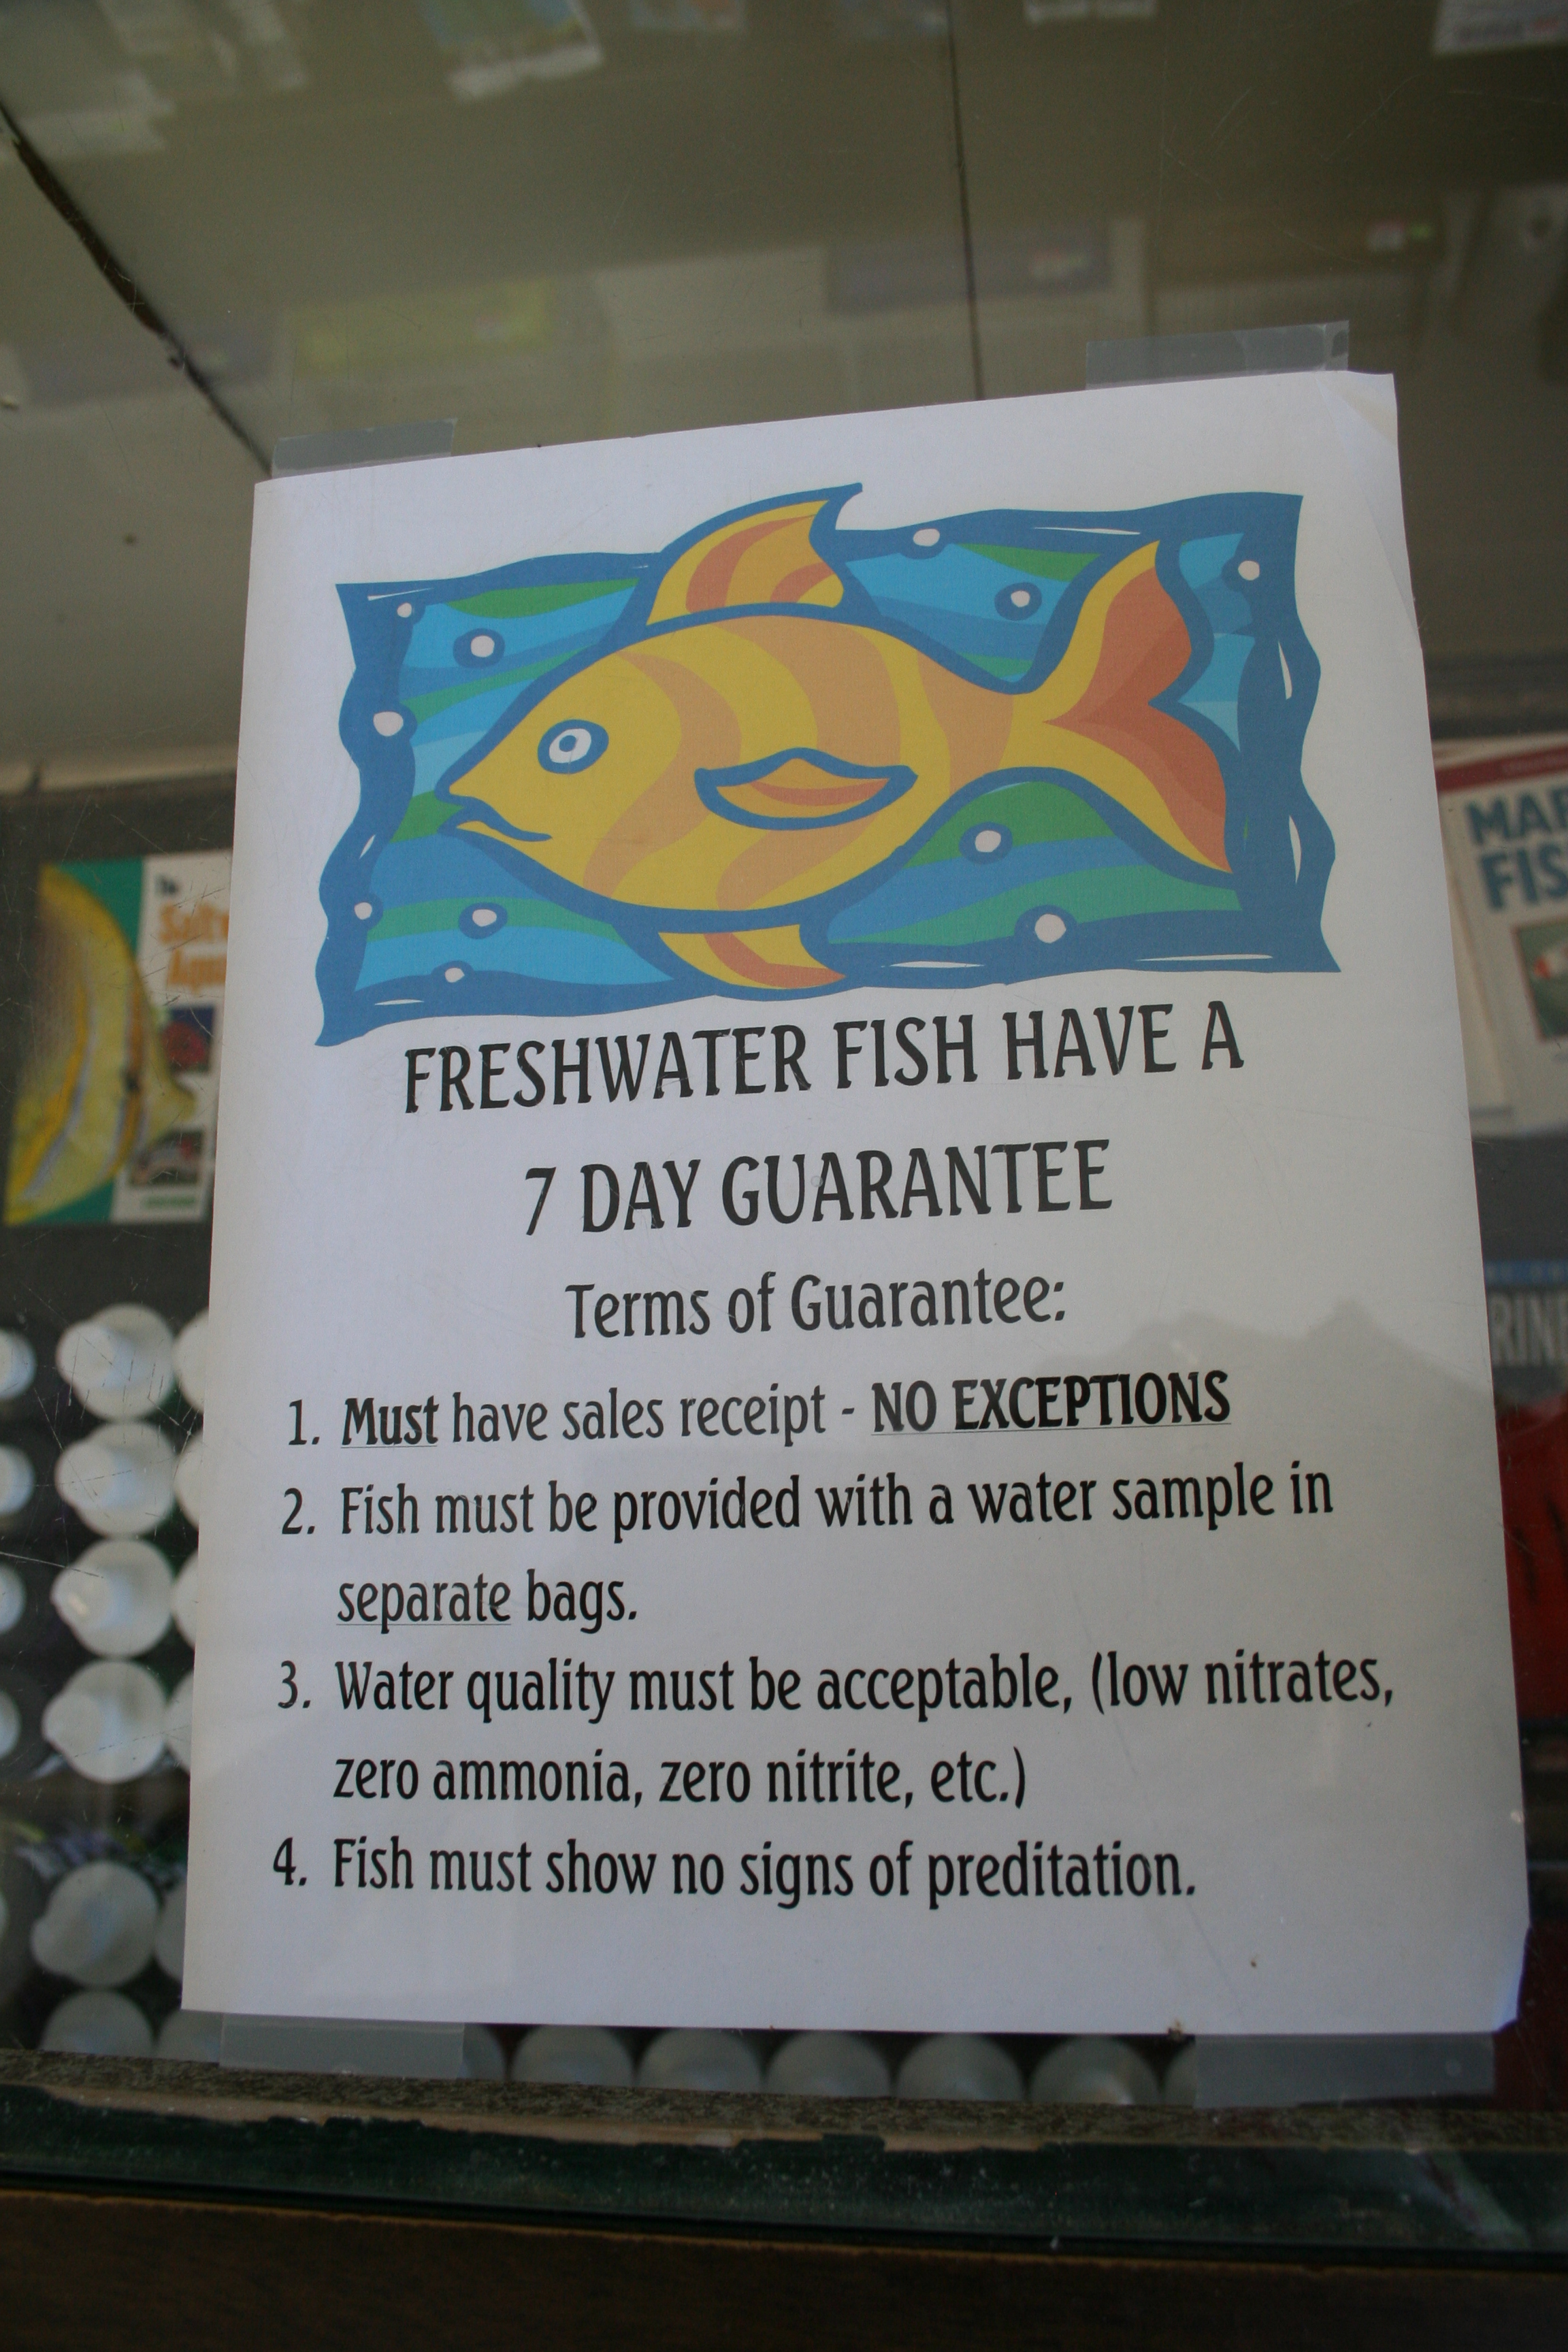 Freshwater aquarium fish jacksonville fl - Click On The Link To Find Out More